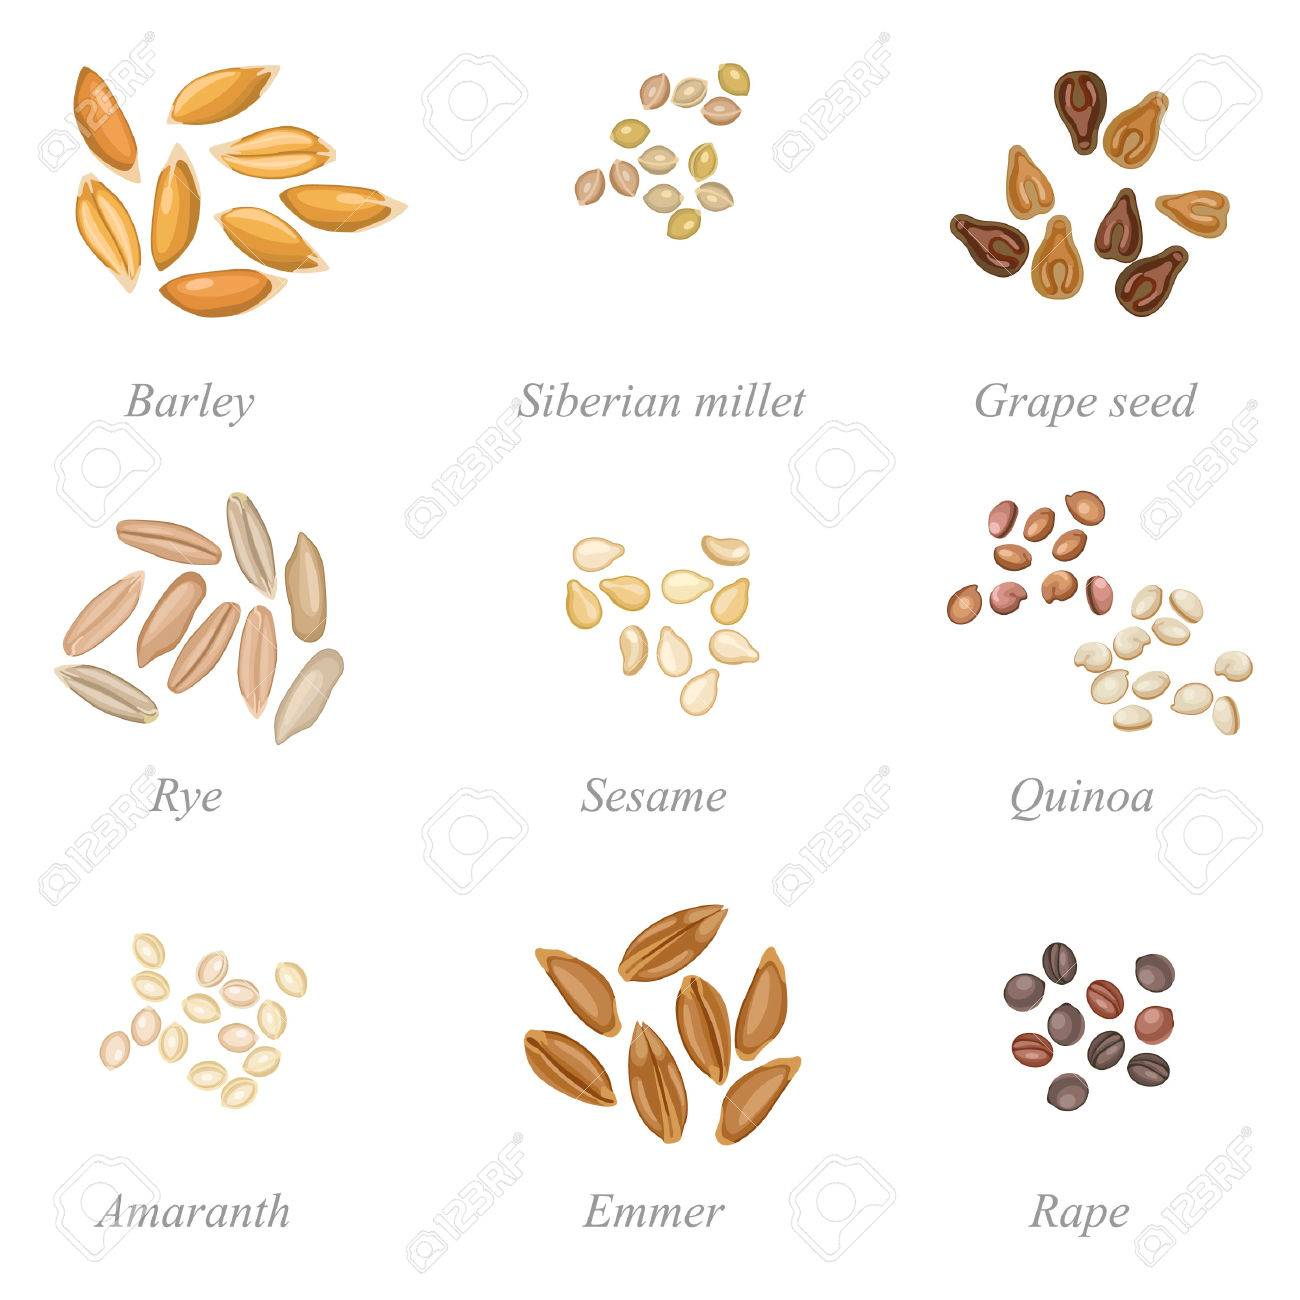 Icons set of cereal grains and oilseeds - 55816879